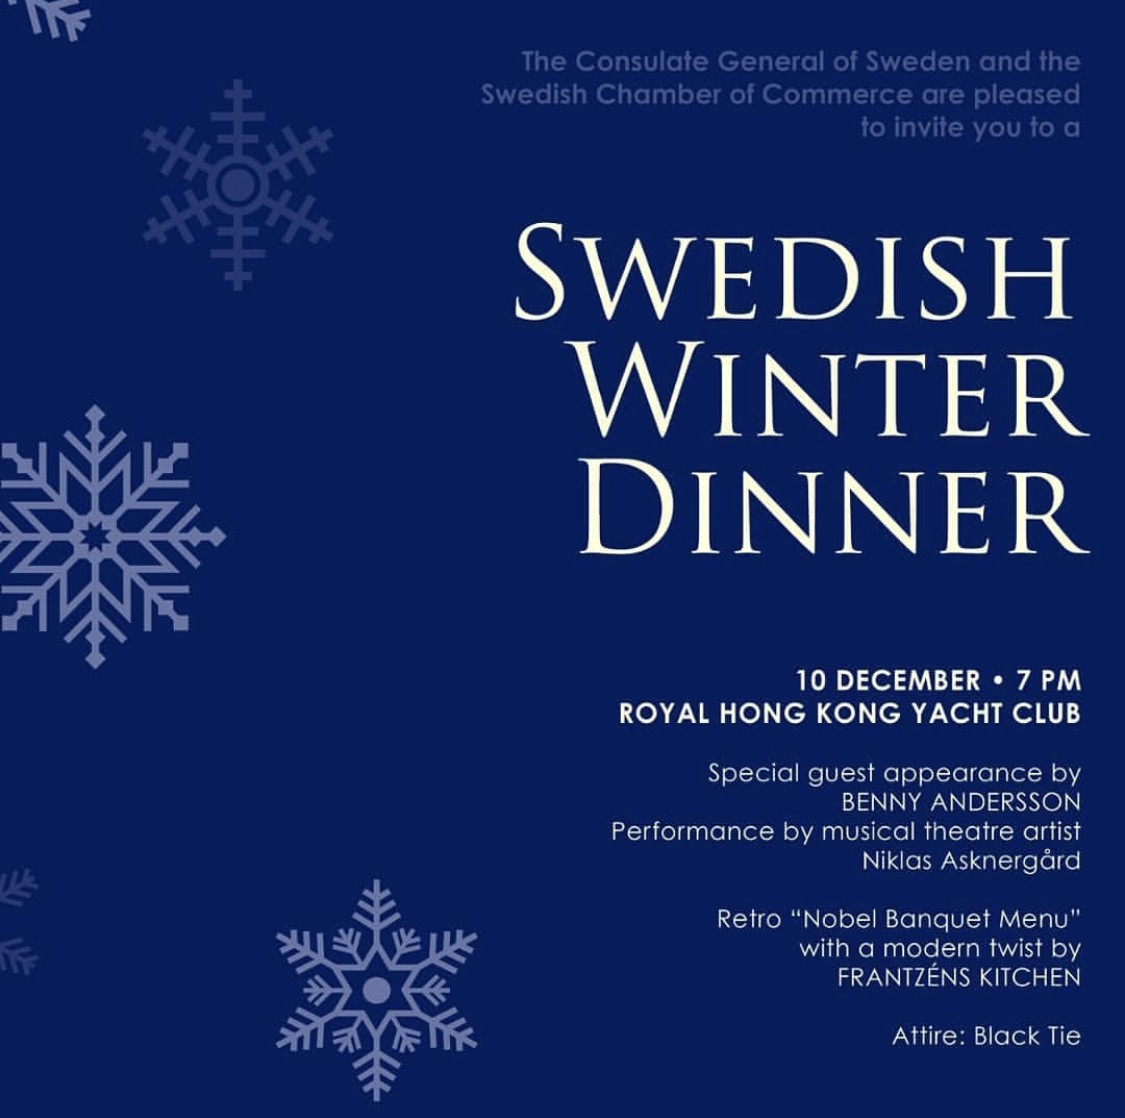 Swedish Winter Dinner in Hongkong